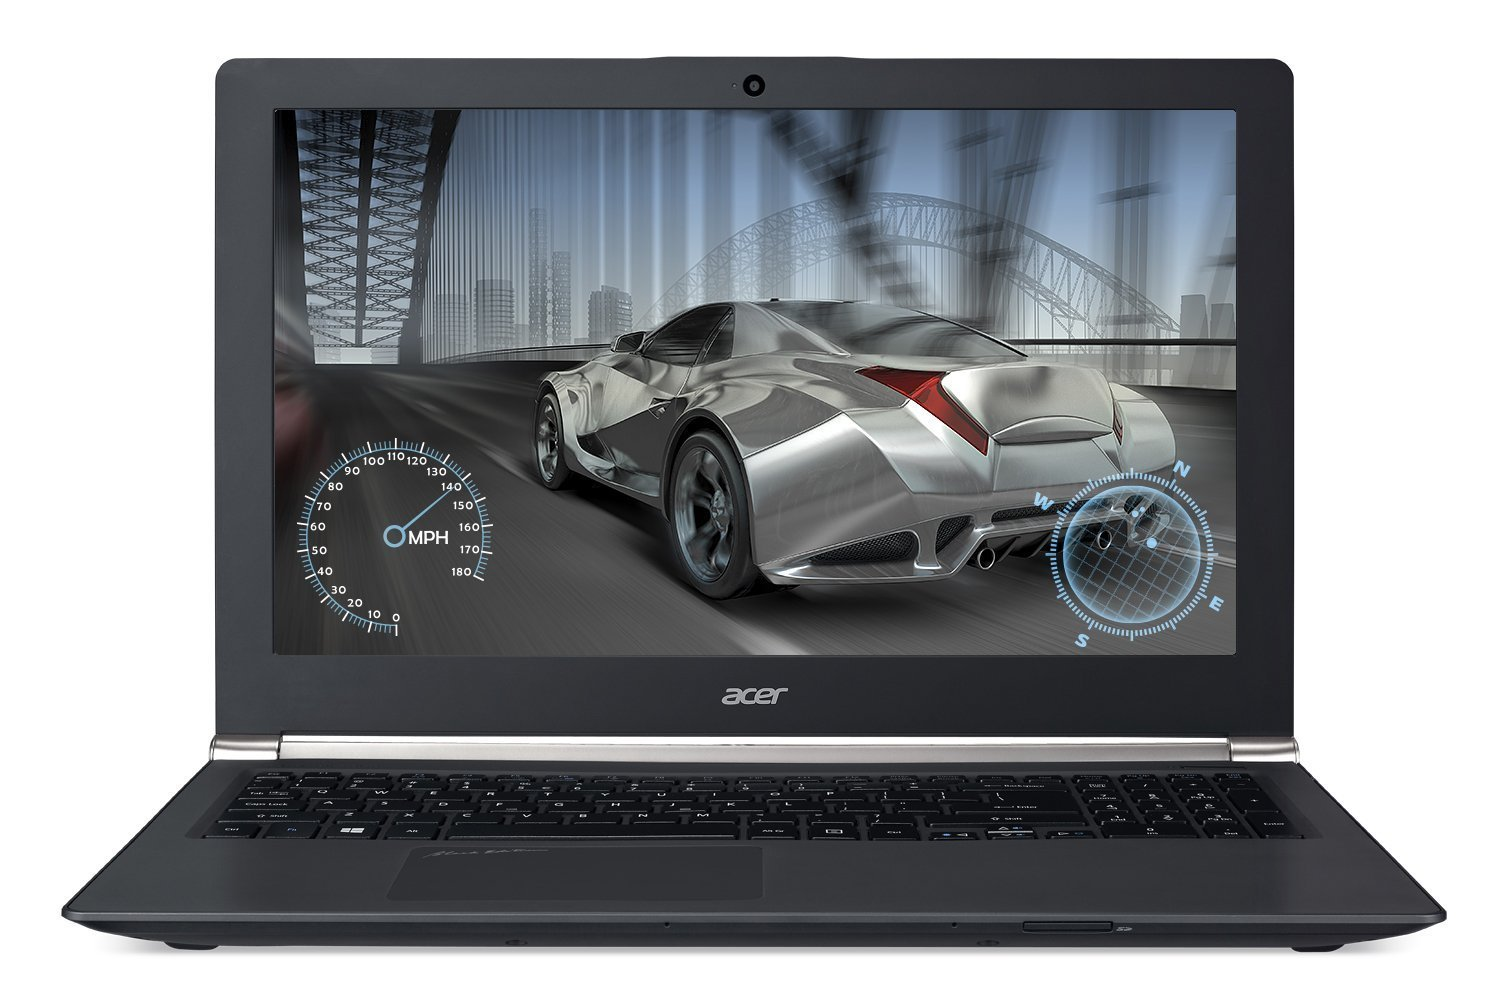 acer-aspire-15-6-inch-gaming-laptop-geforce-940m-4-gb